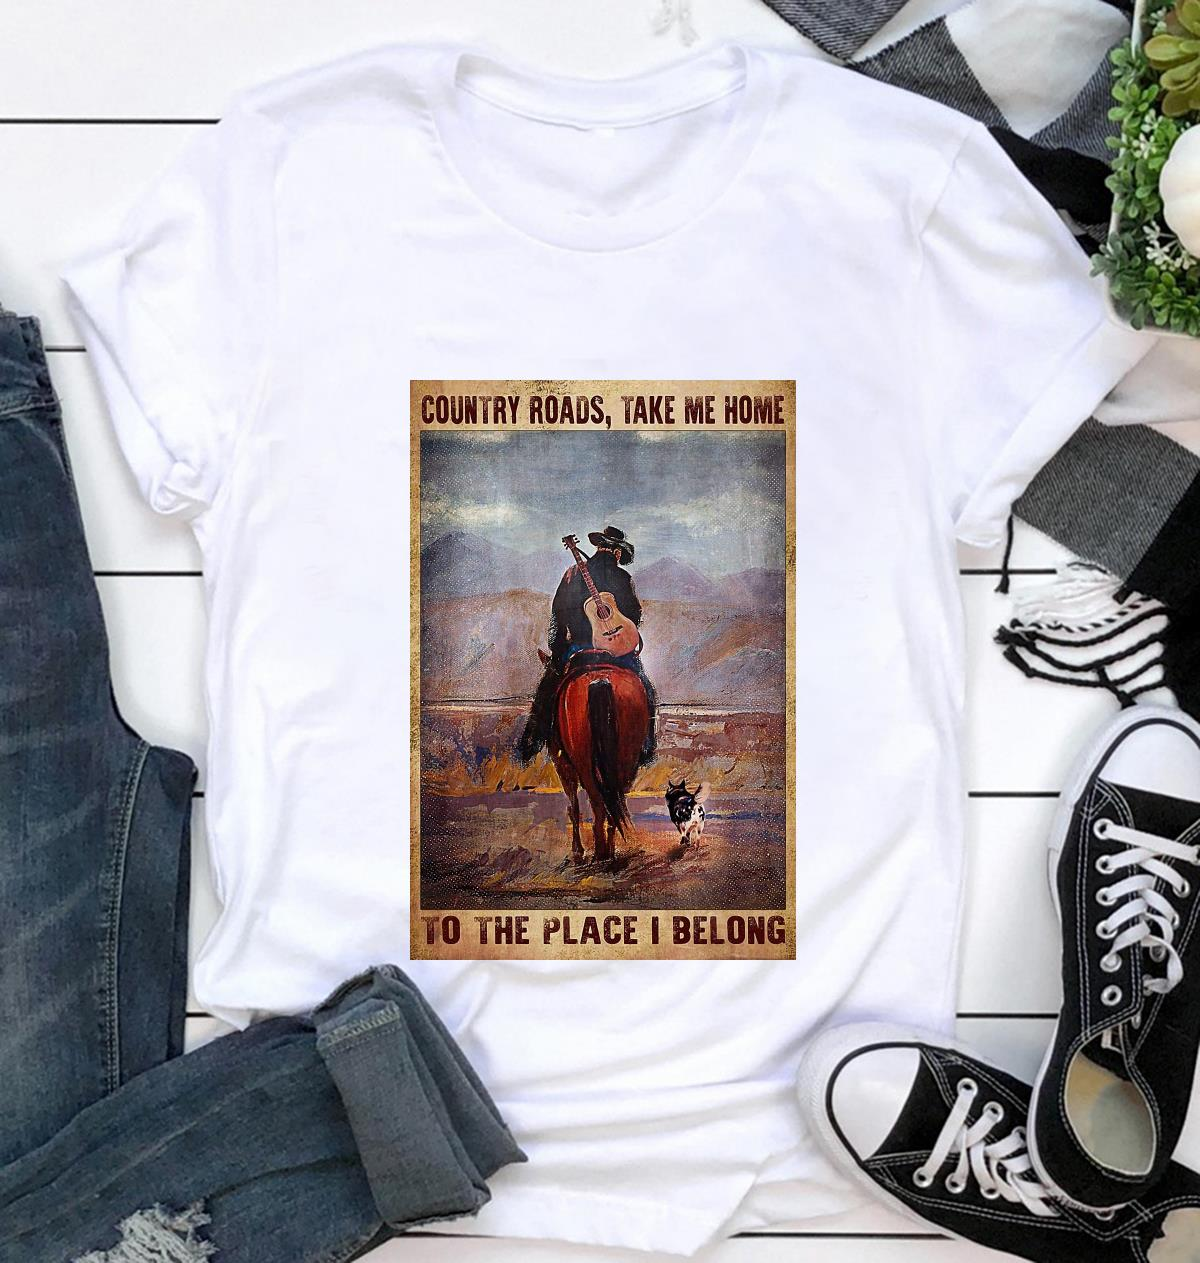 Country roads take me home to the place I belong vertical poster t-shirt